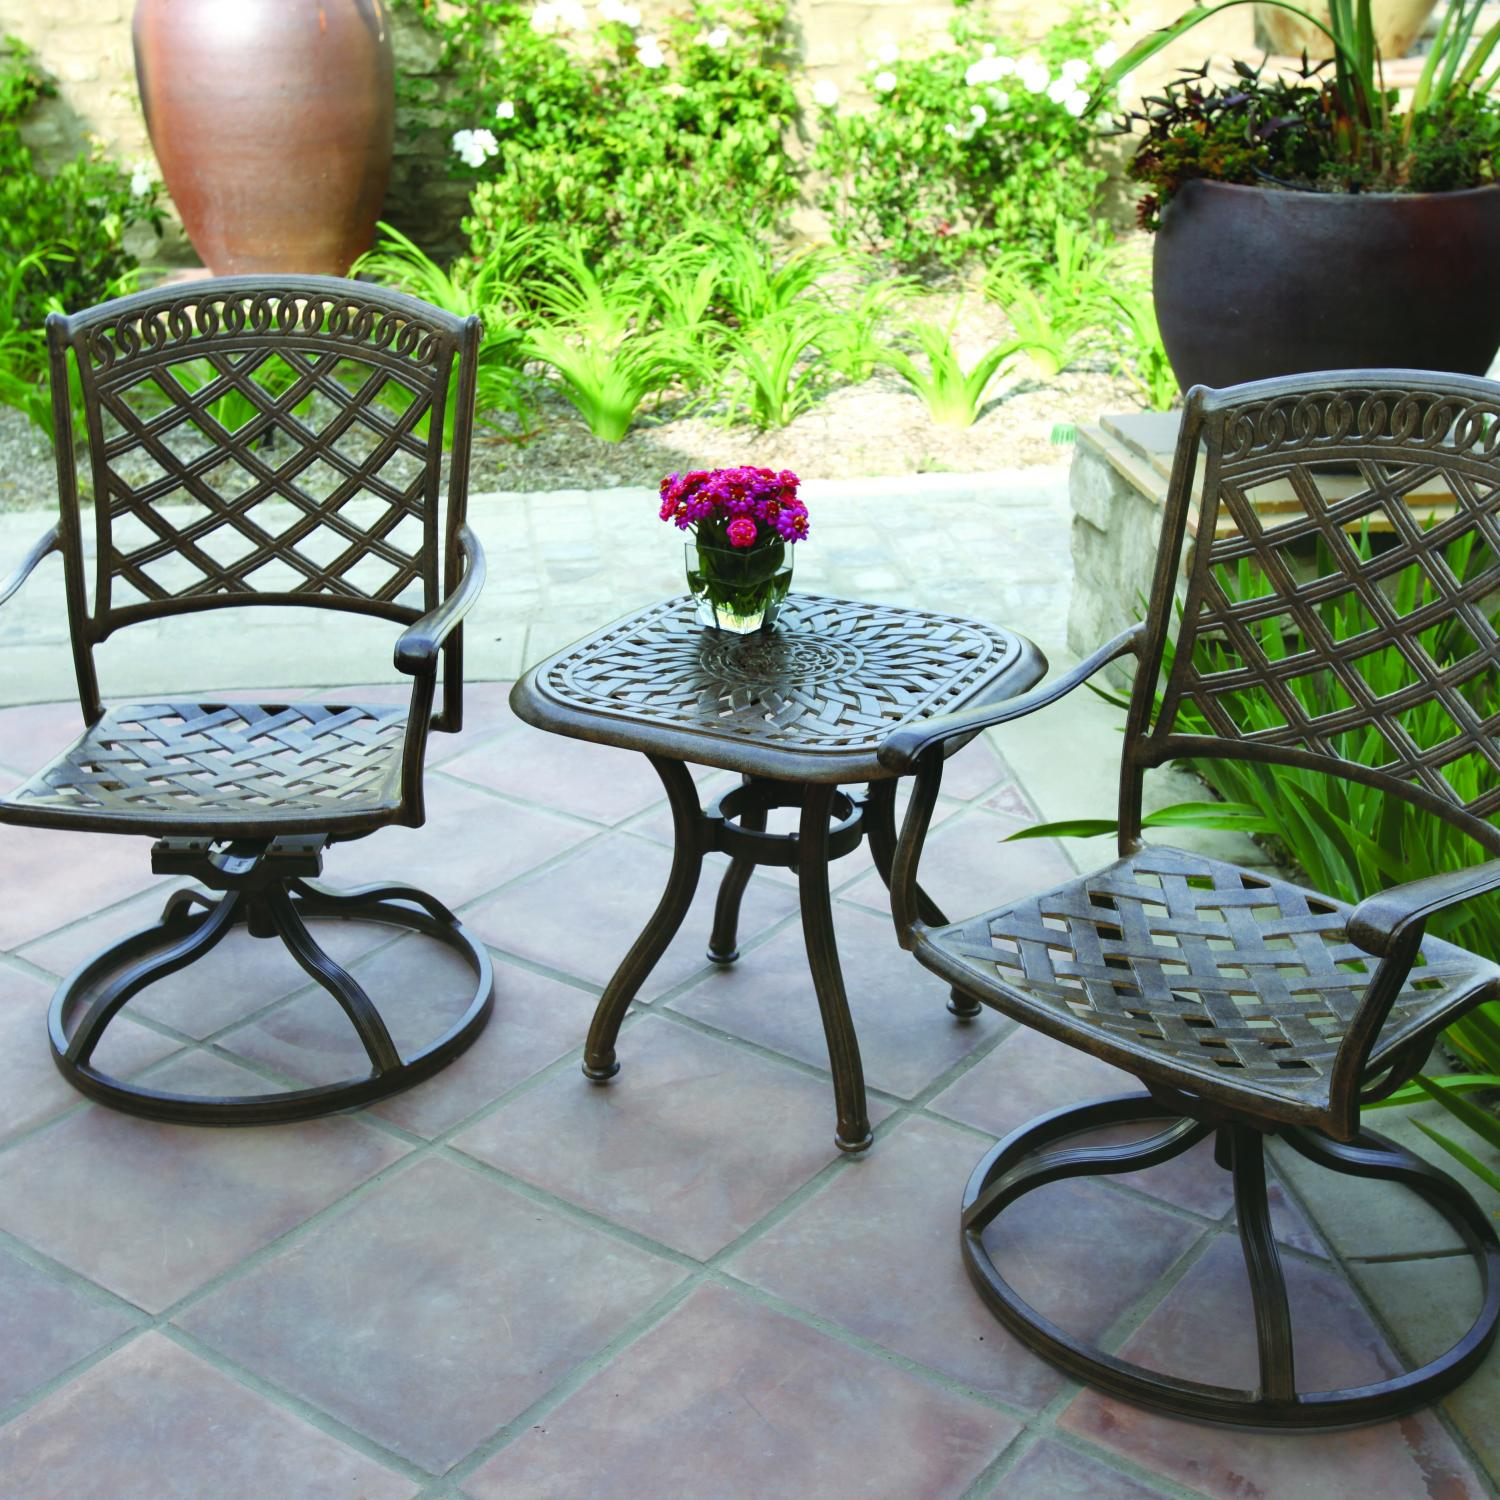 Improve your patio ambiance by patio bistro set